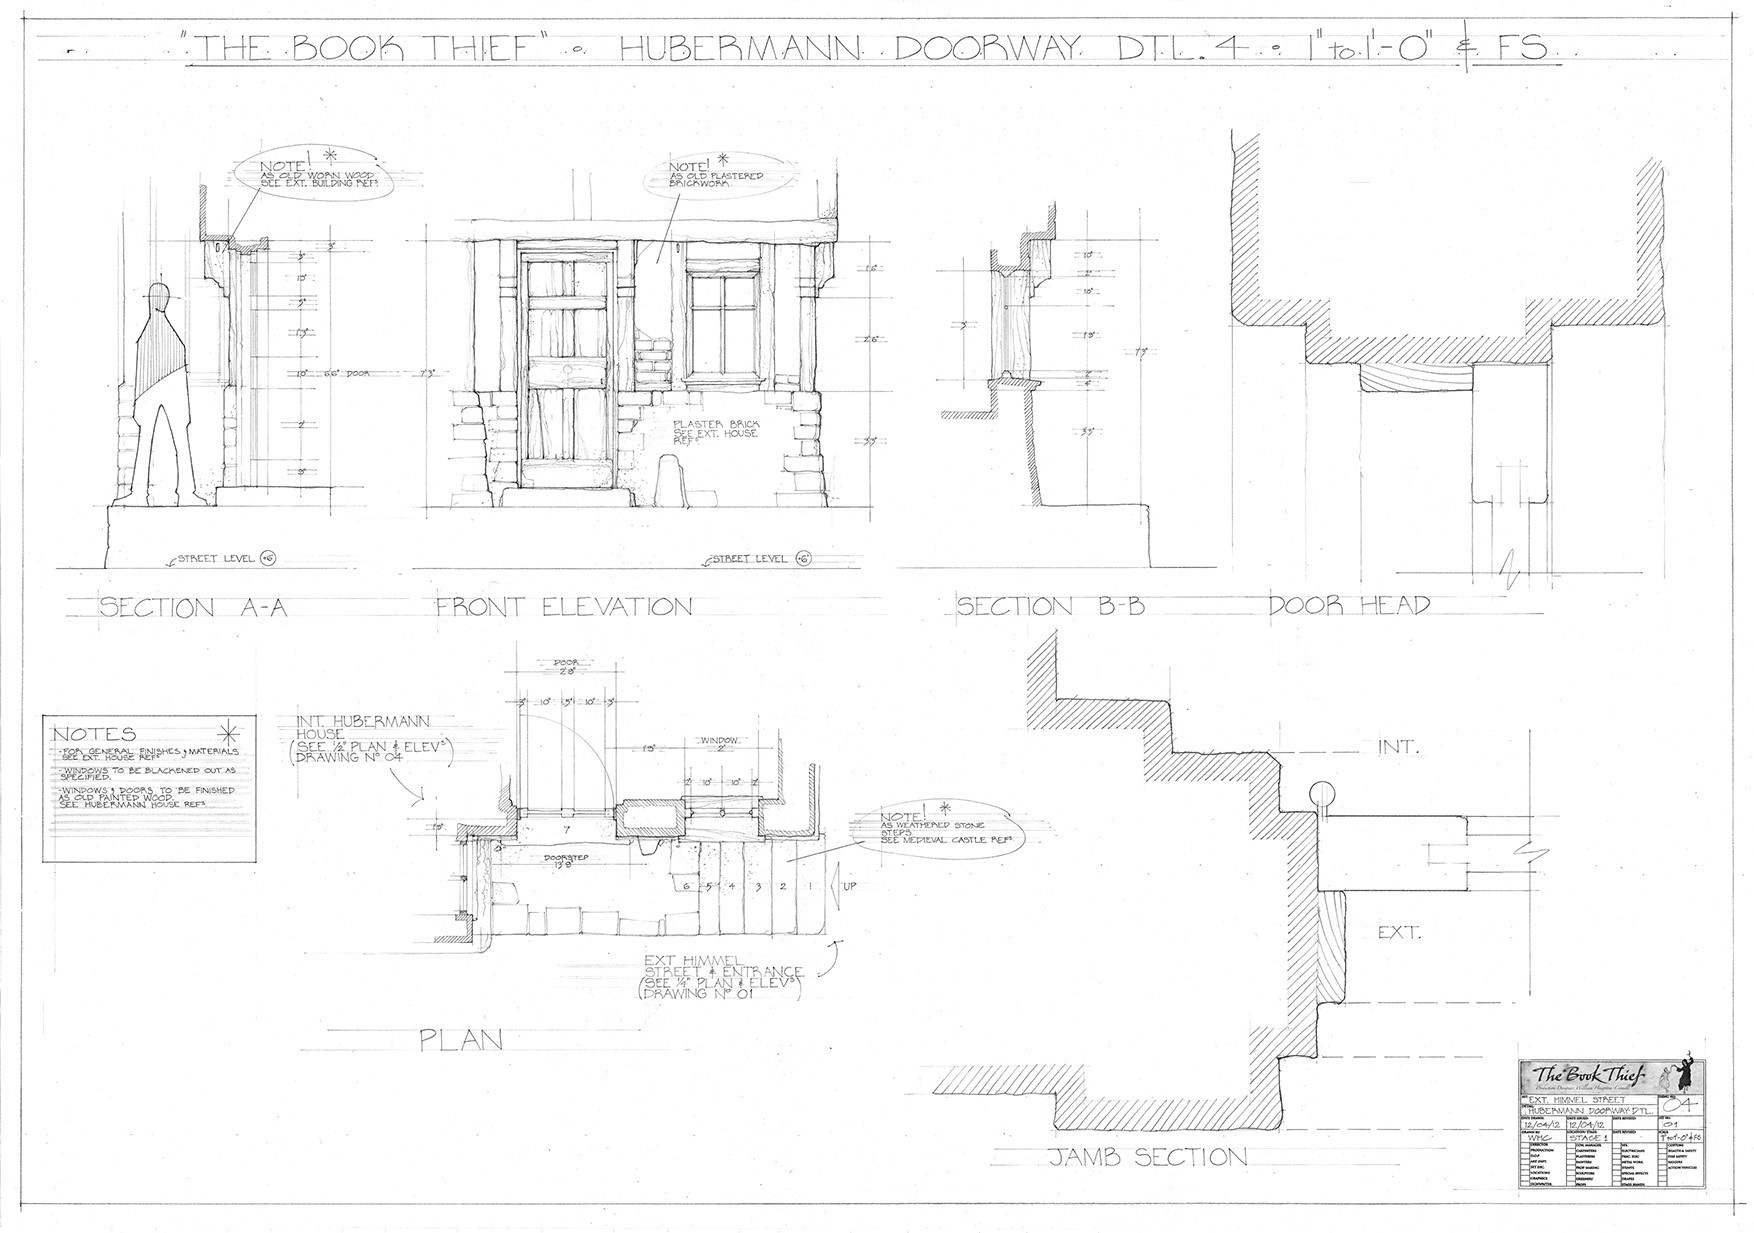 Will Houghton-Connell - Draughting Building Door Dtl.